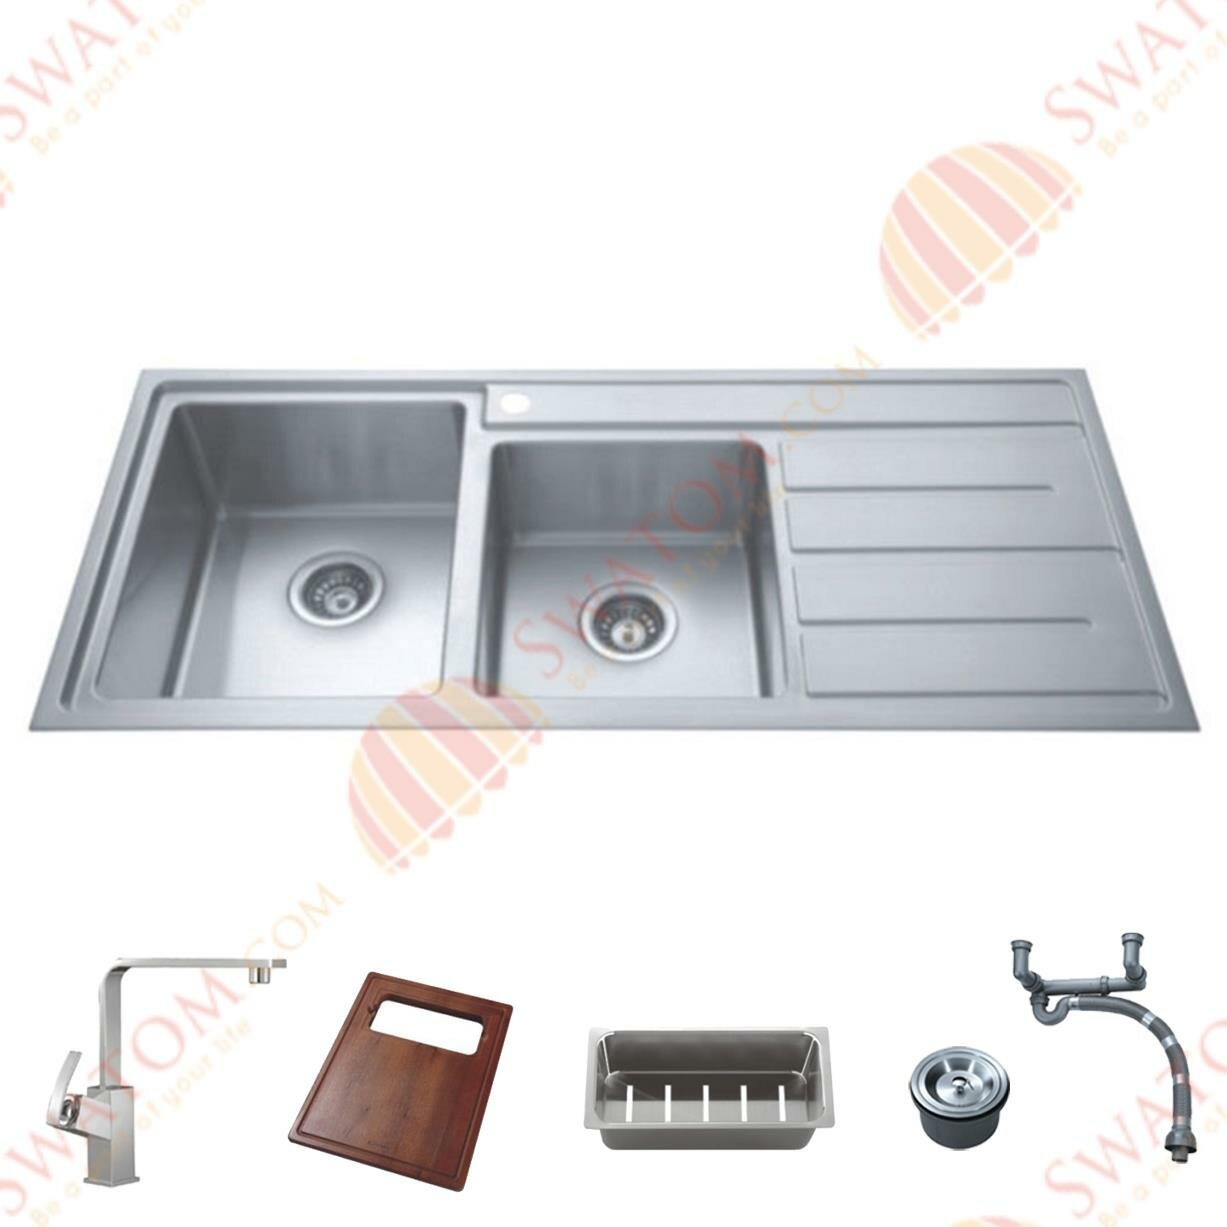 Kitchen Sinks Stainless Steel | Corner Stainless Steel Kitchen Sink | Ss Kitchen Sink